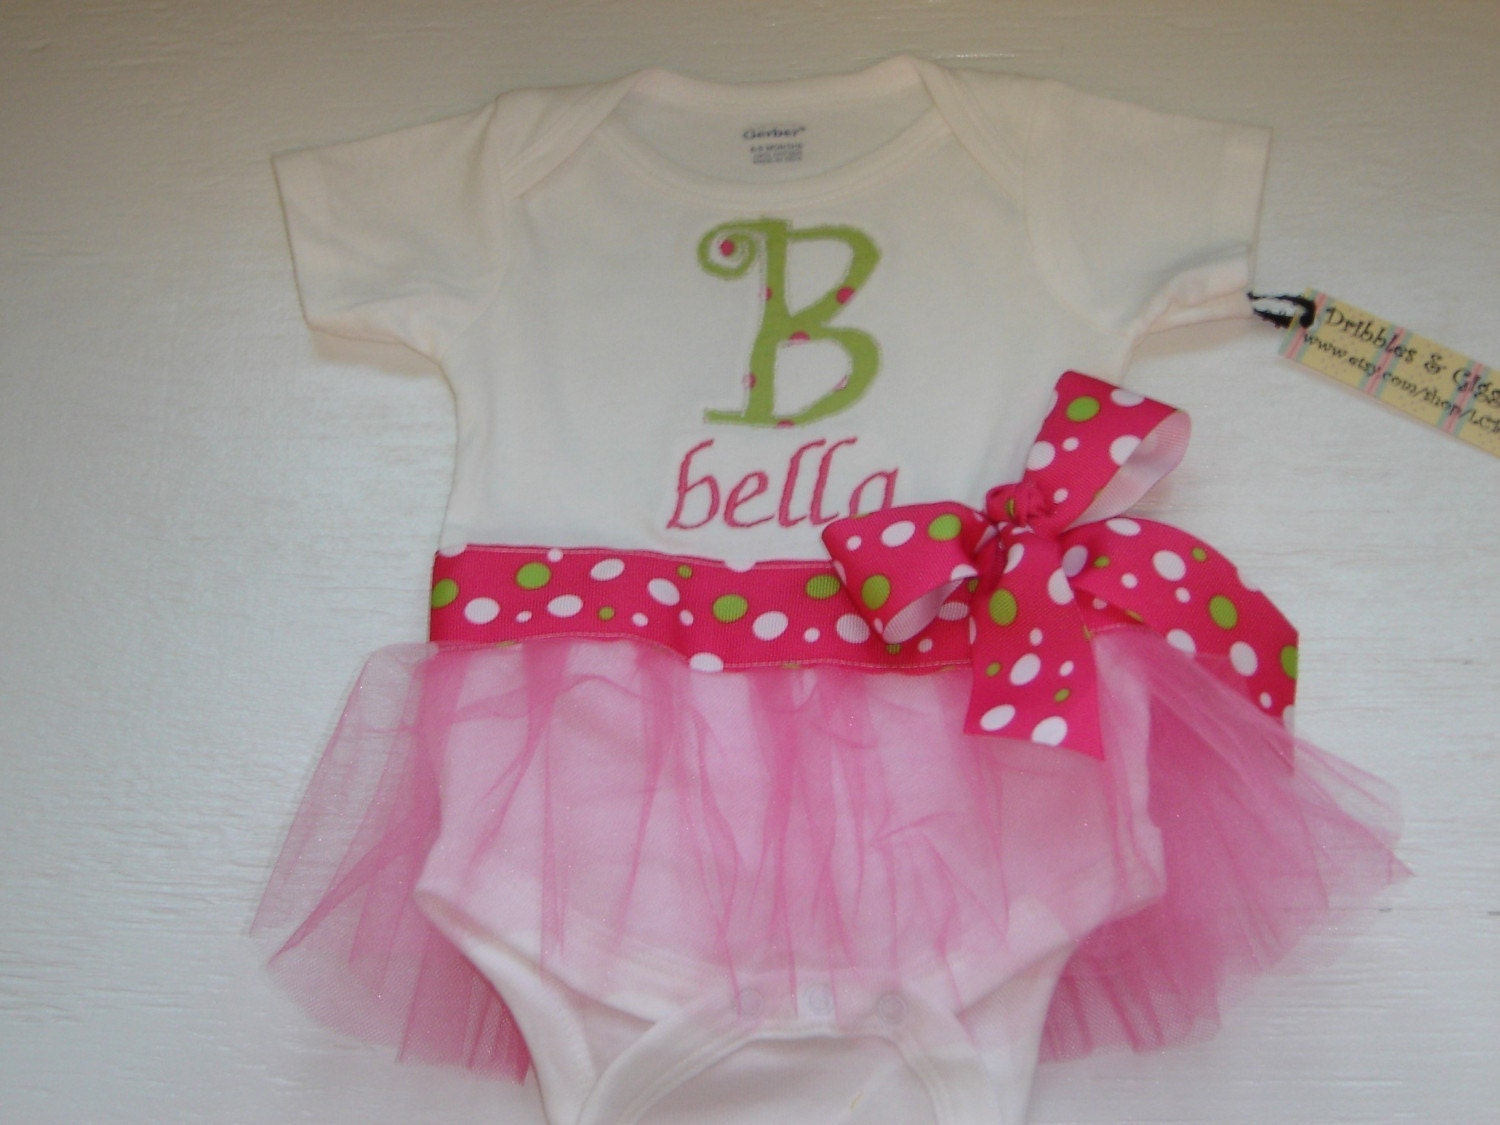 tutu onesie dresses    monogrammed baby girl gifts by lcbags